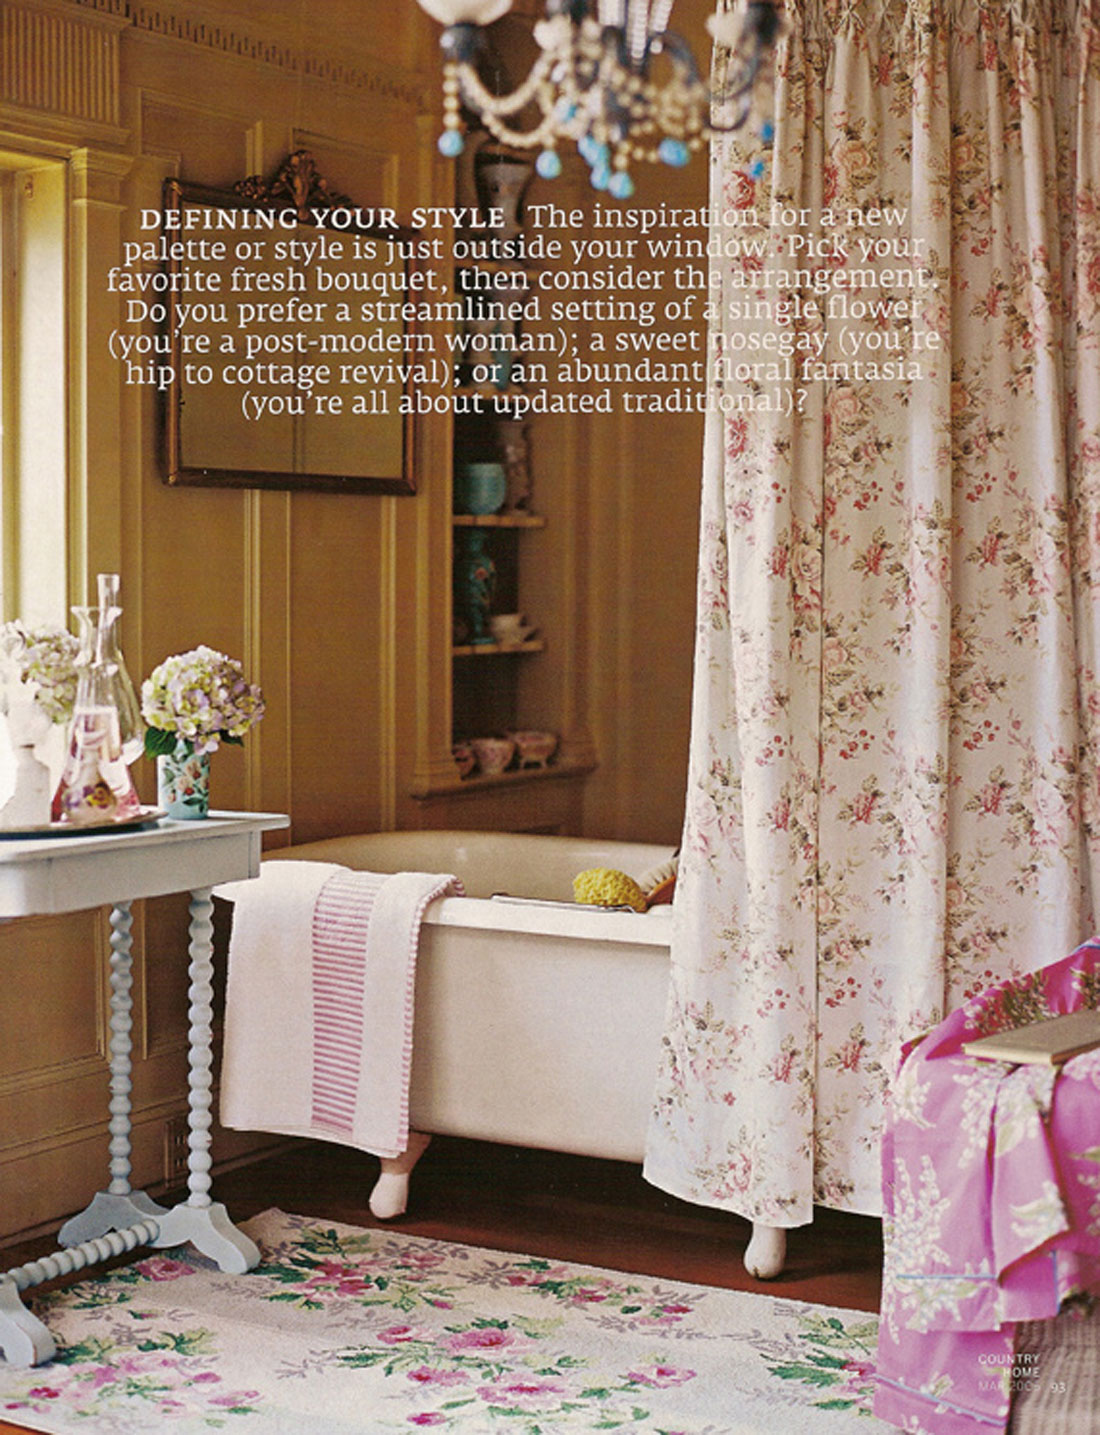 Special Rhein Interior Handcrafted Vintage Decor Country Home Magazine Closing Country Home Magazine Spring 2018 curbed Country Home Magazine